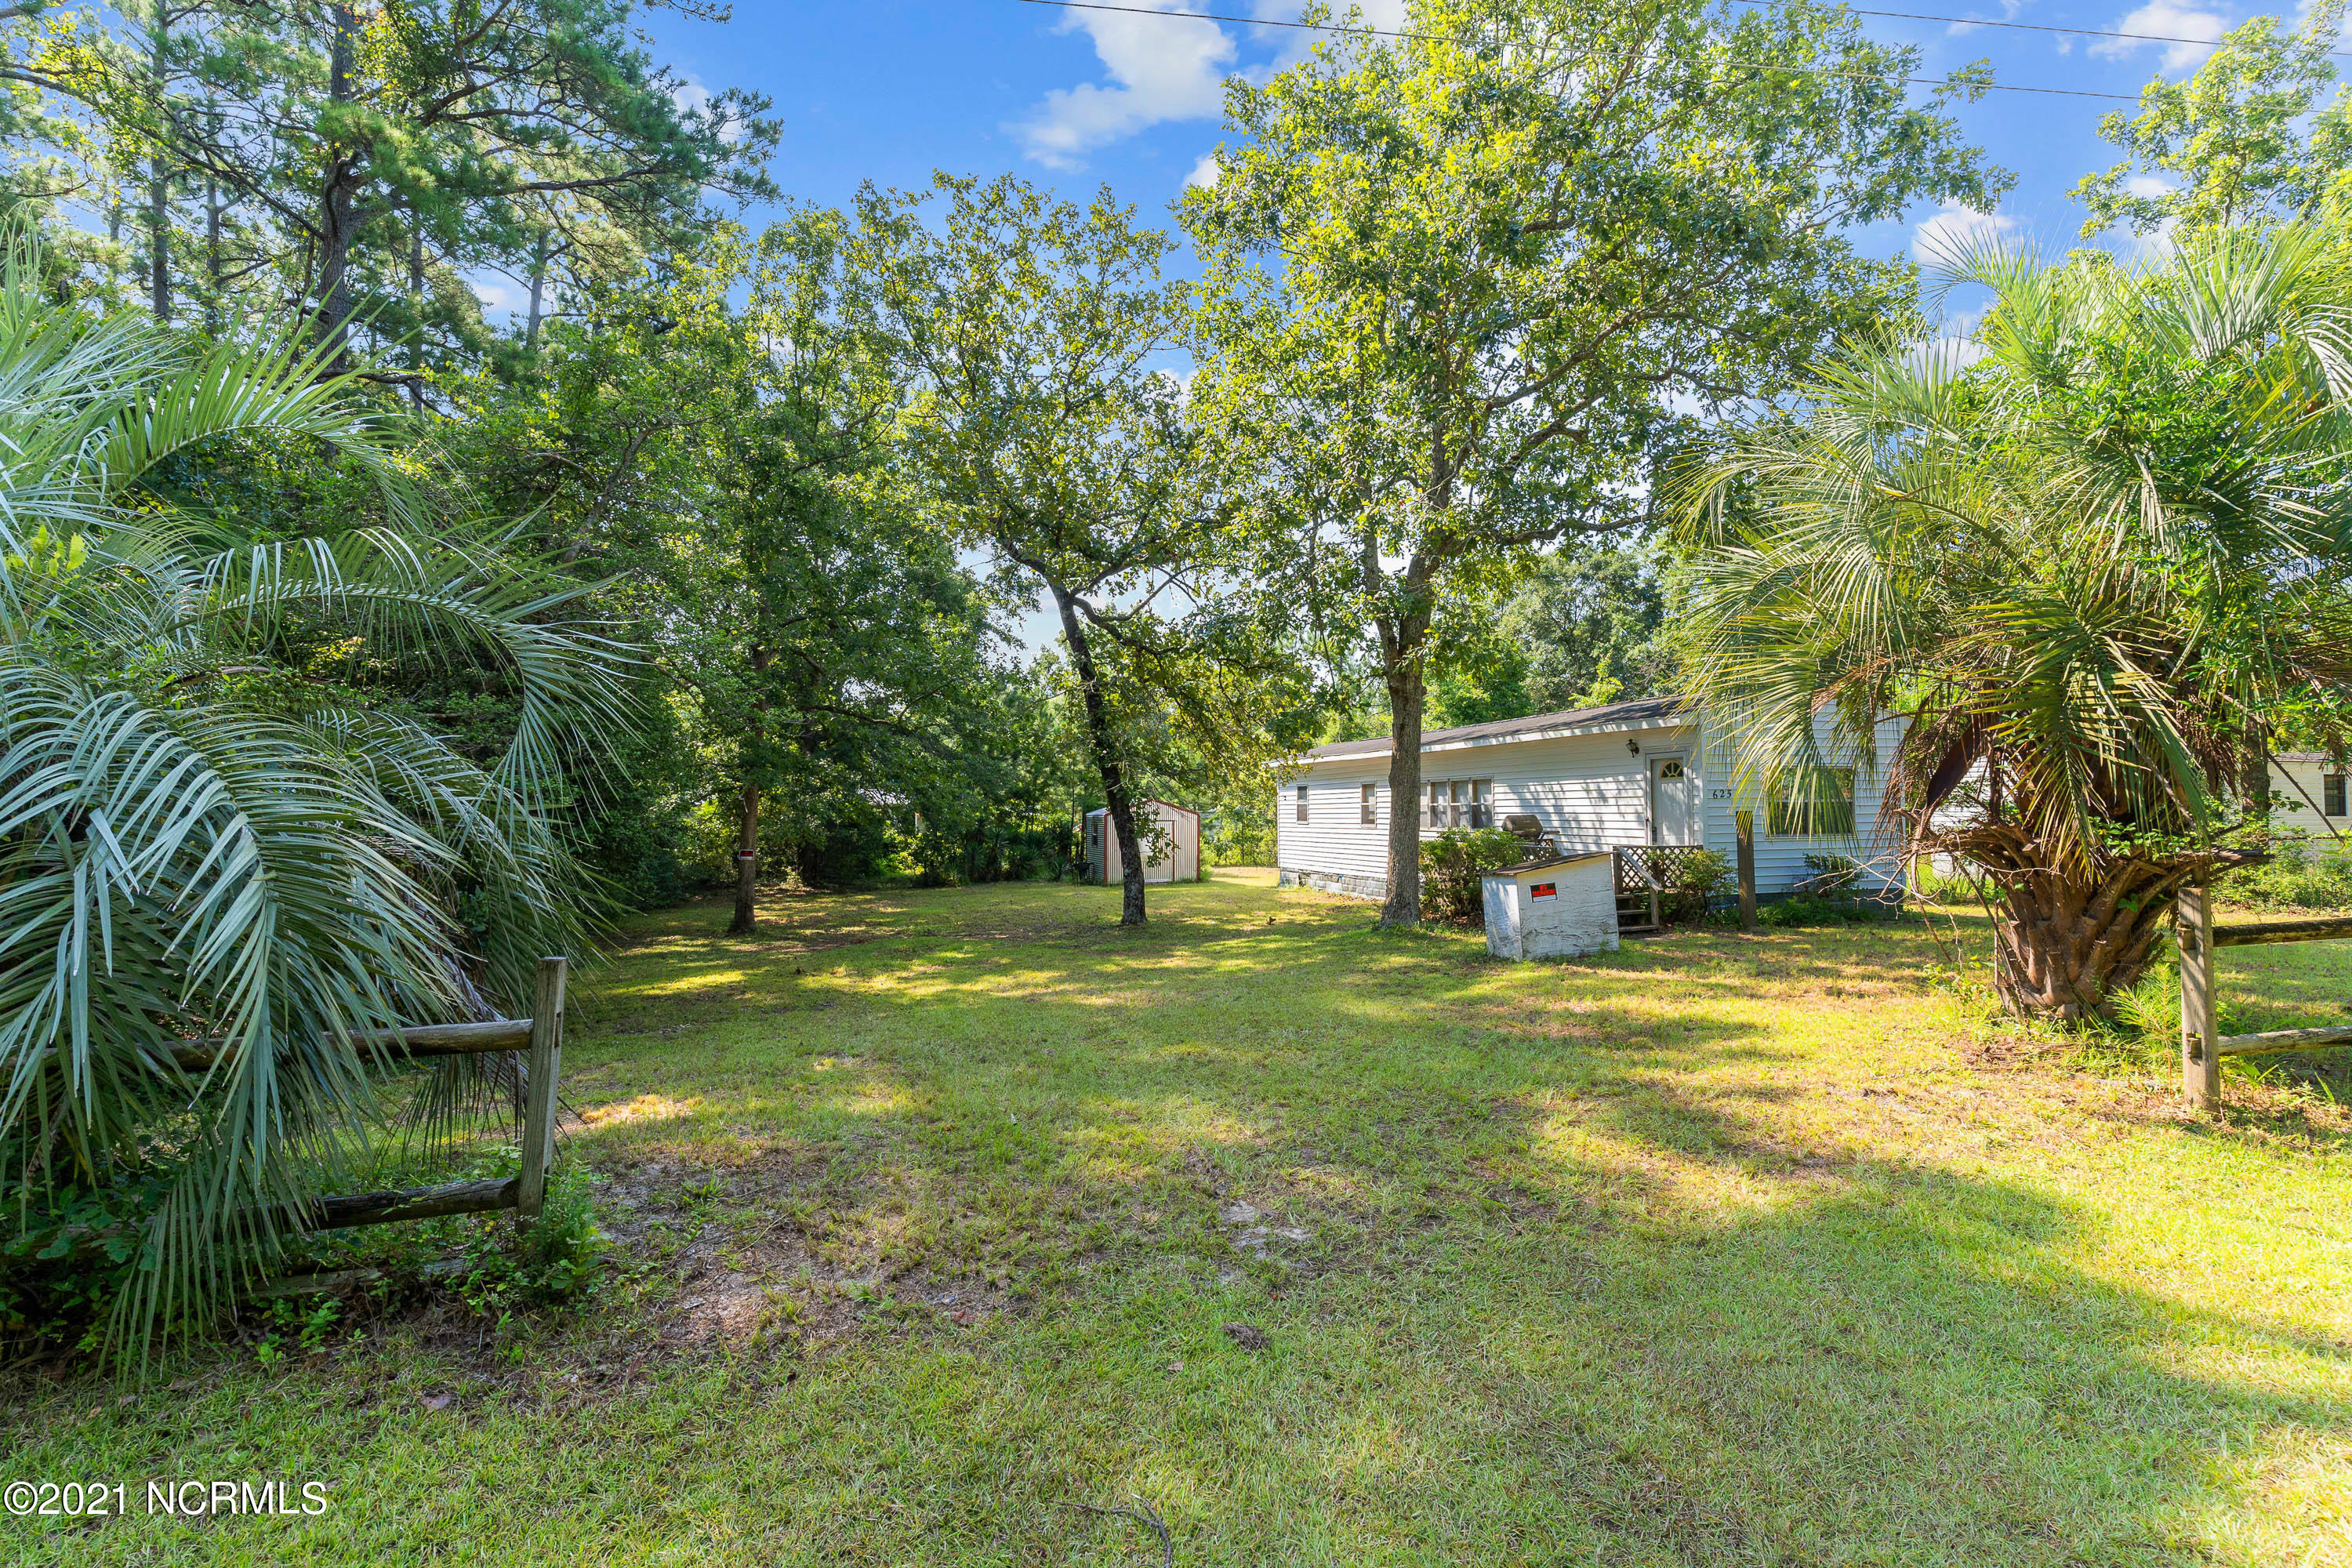 625 Southwind Drive, Supply, North Carolina 28462, 2 Bedrooms Bedrooms, 5 Rooms Rooms,1 BathroomBathrooms,Manufactured home,For sale,Southwind,100282870